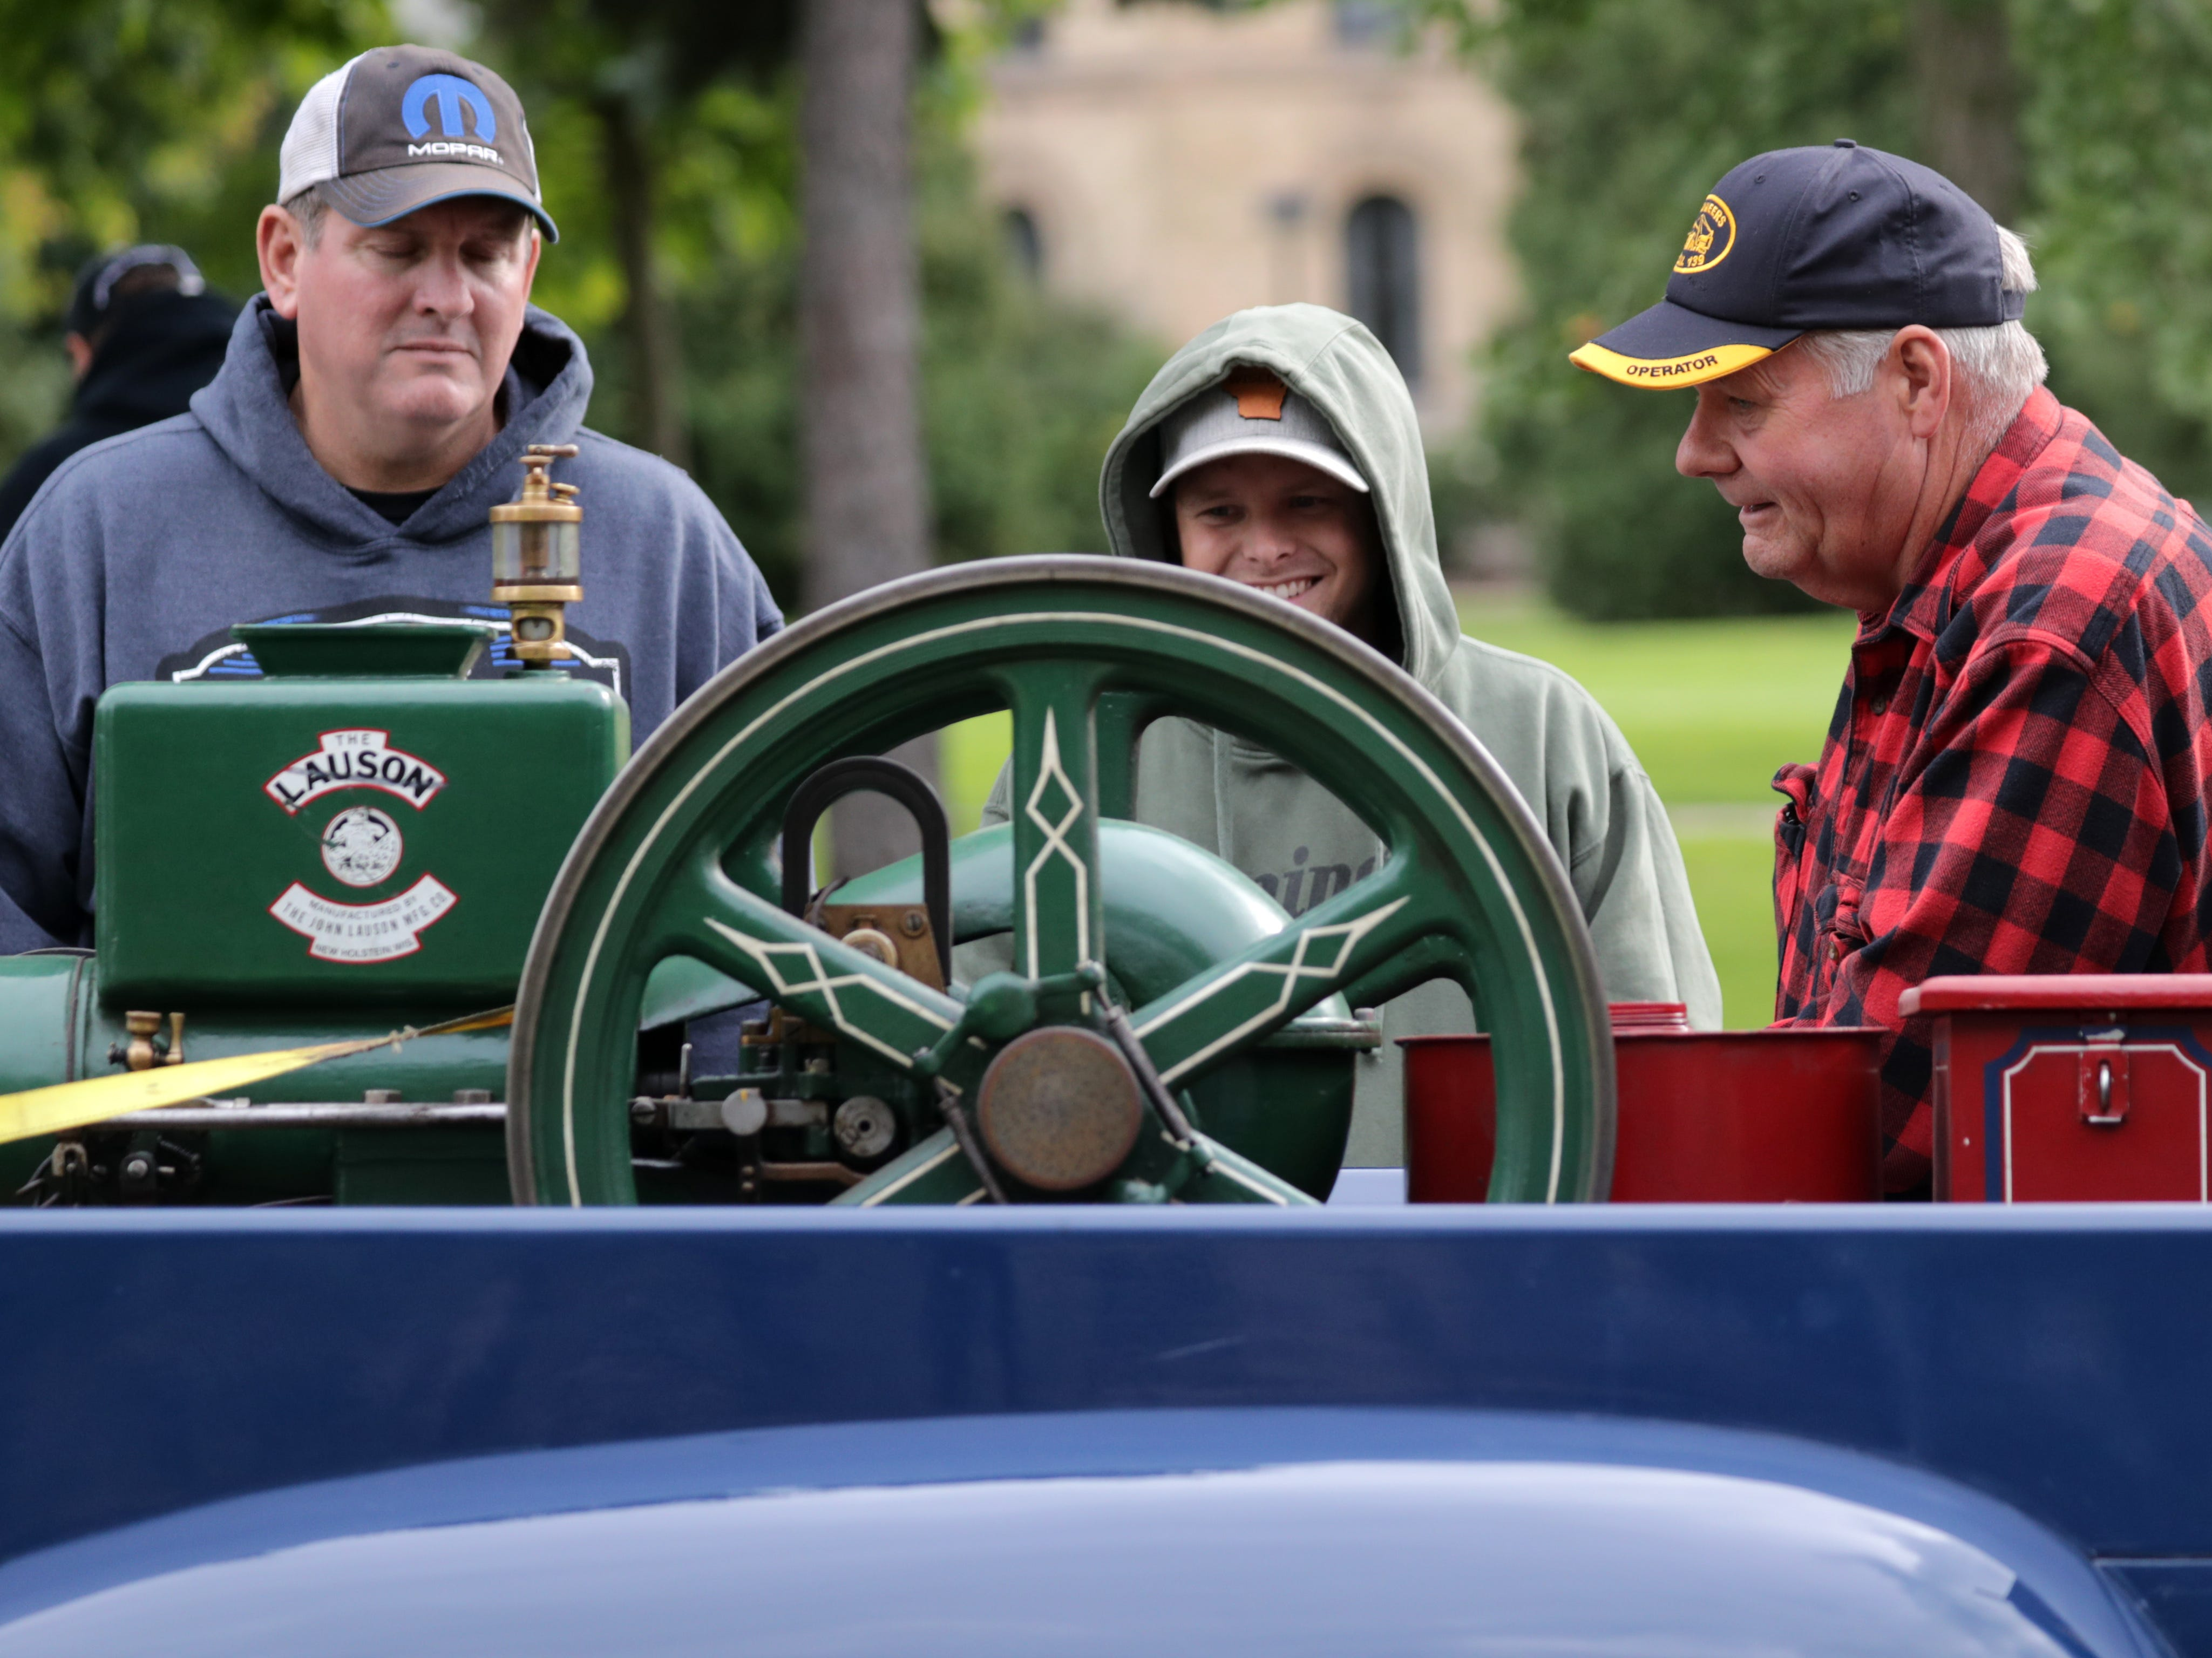 Ross Goldbeck, right, talks about his New Holstiein made Lauson engine with Jeff Thurk, left, Goland Ryan Hayes, center during the annual License to Cruise car show on Friday, September 28, 2018, on College Ave. in Appleton, Wis.